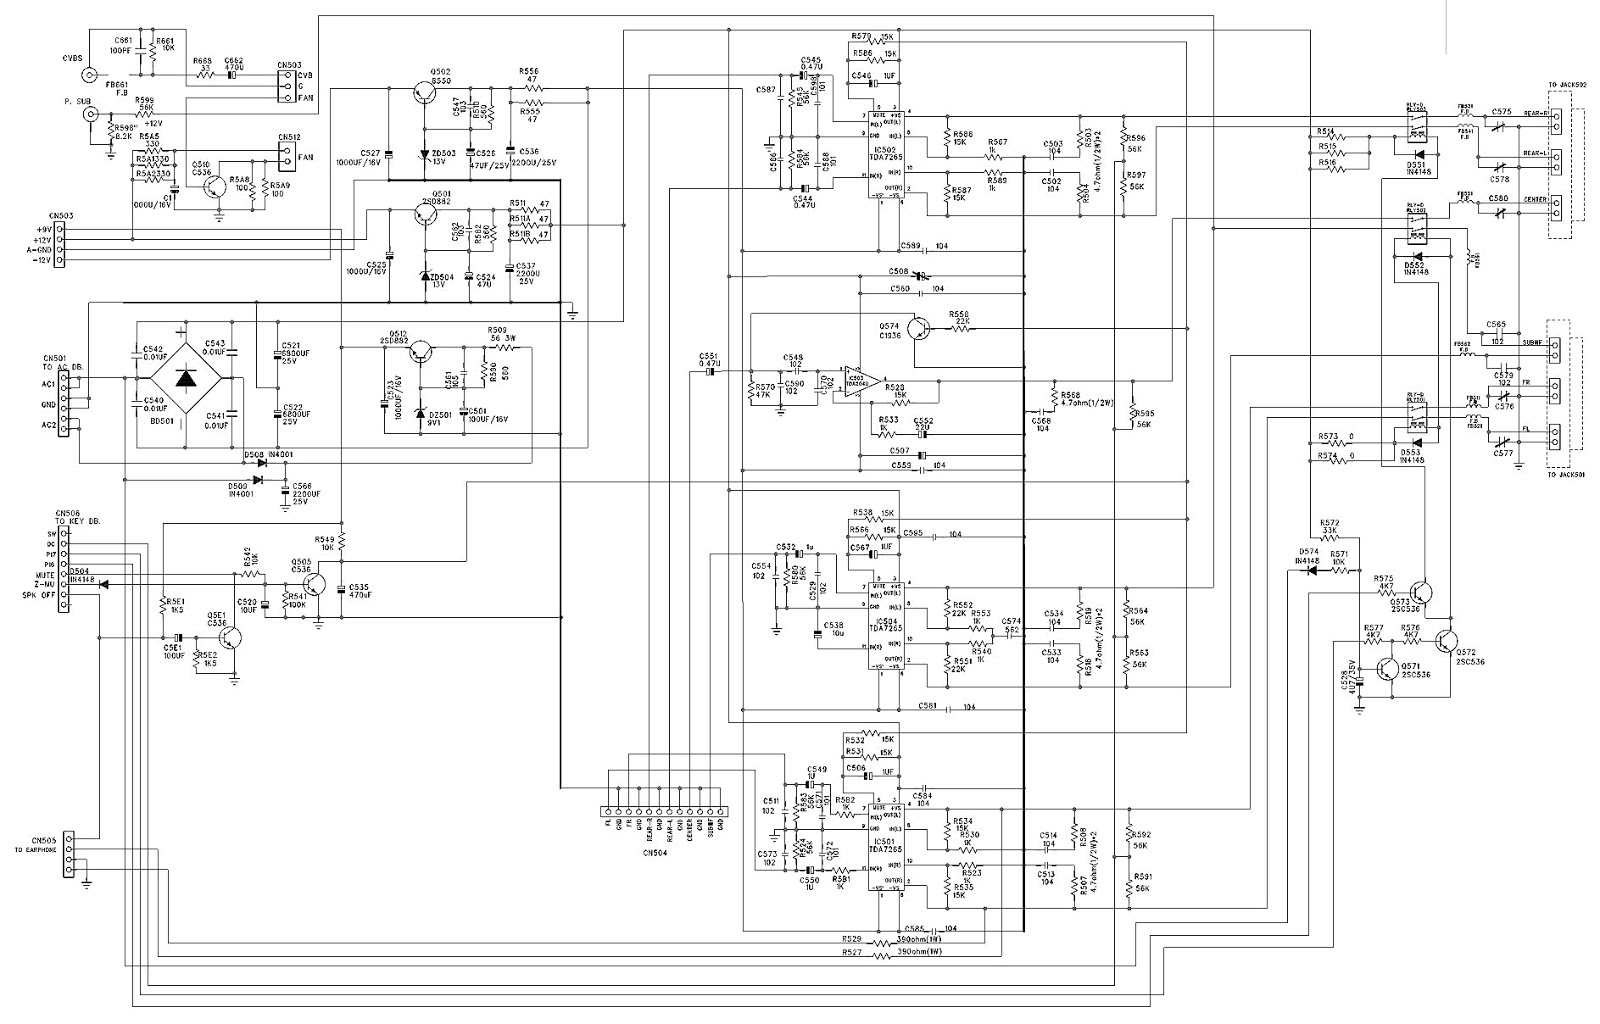 Akira Hts28dvd Home Theater System Schematic Diagram Auto Bose 5 1 Wire Systems Wiring Diagrams